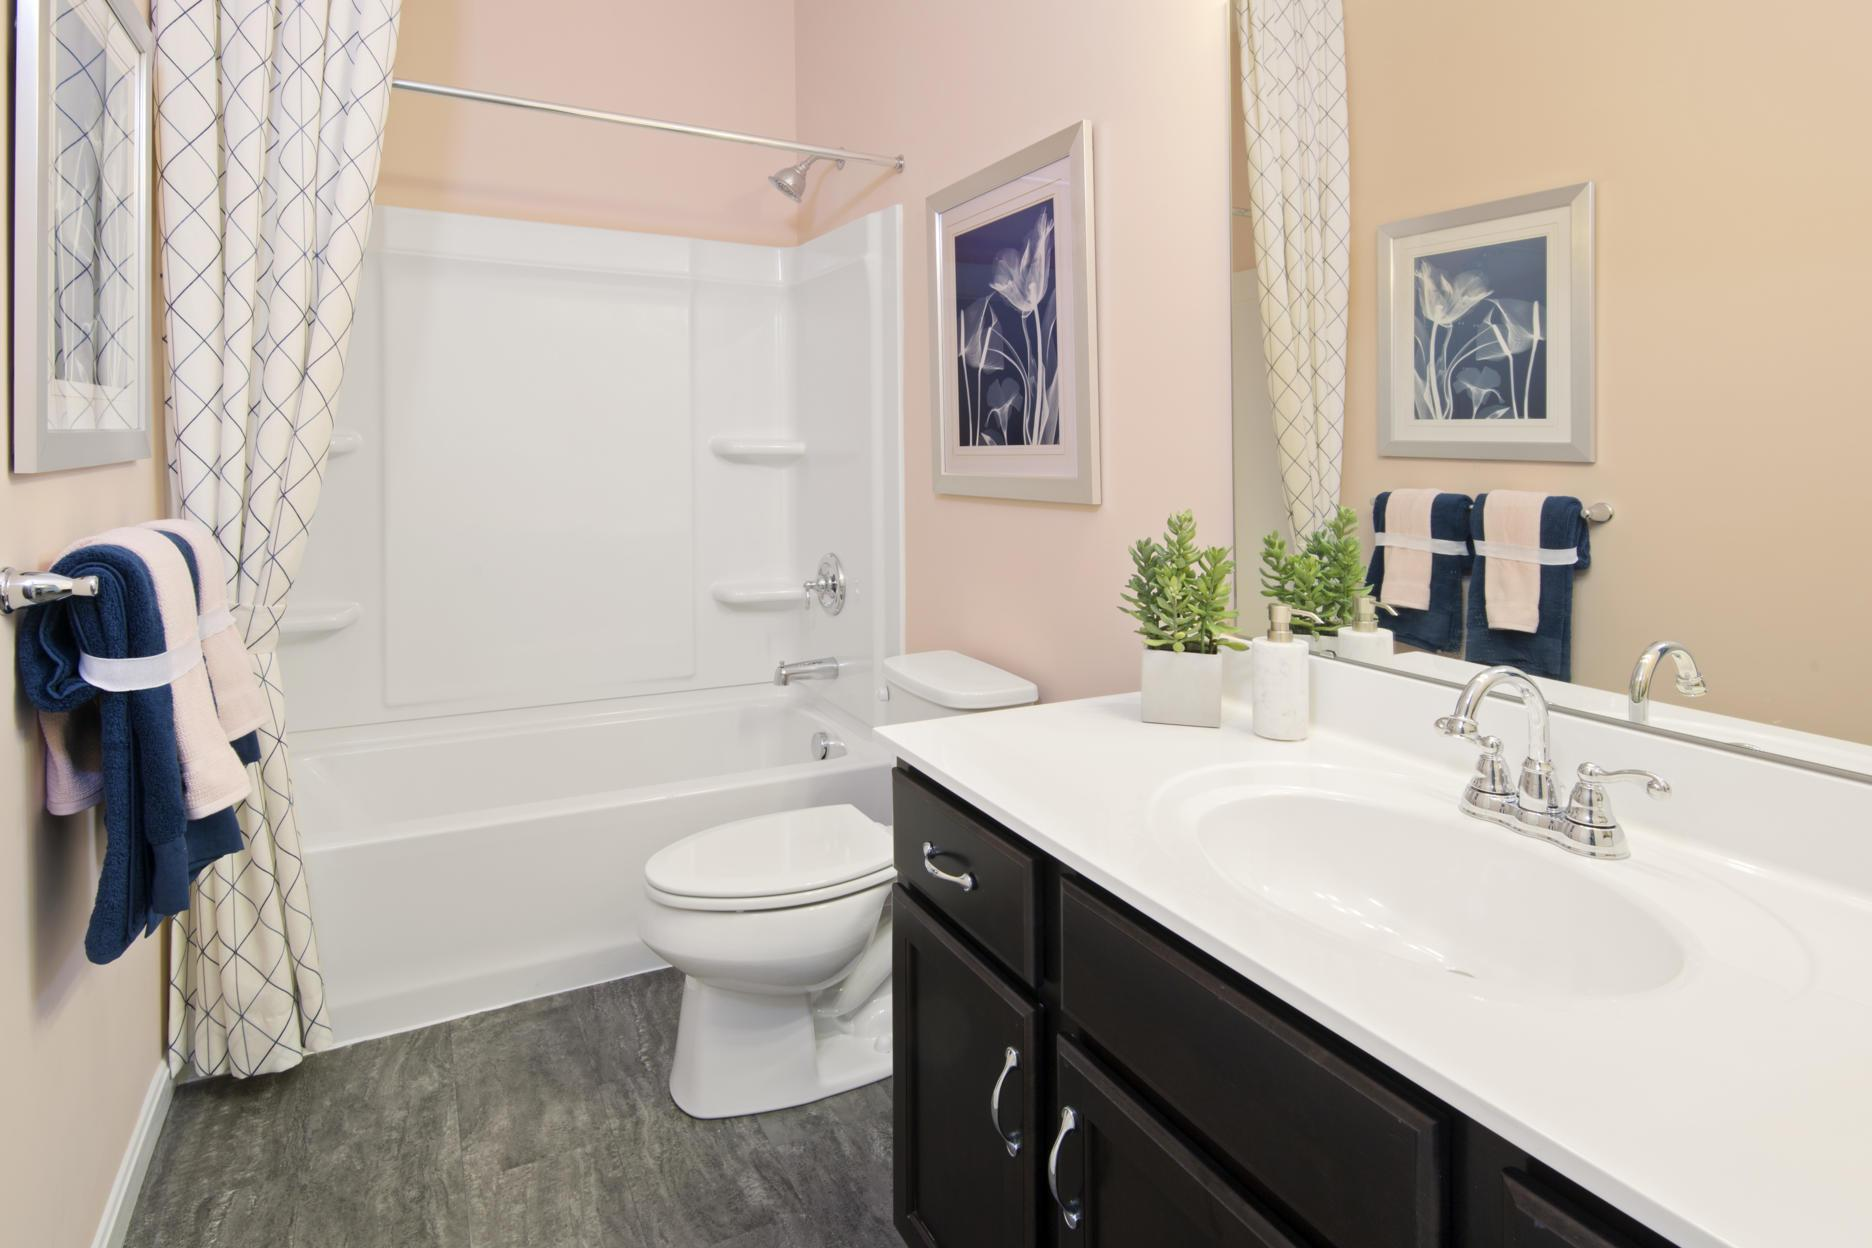 Bathroom featured in the Beachwood By Drees Homes in Cincinnati, KY